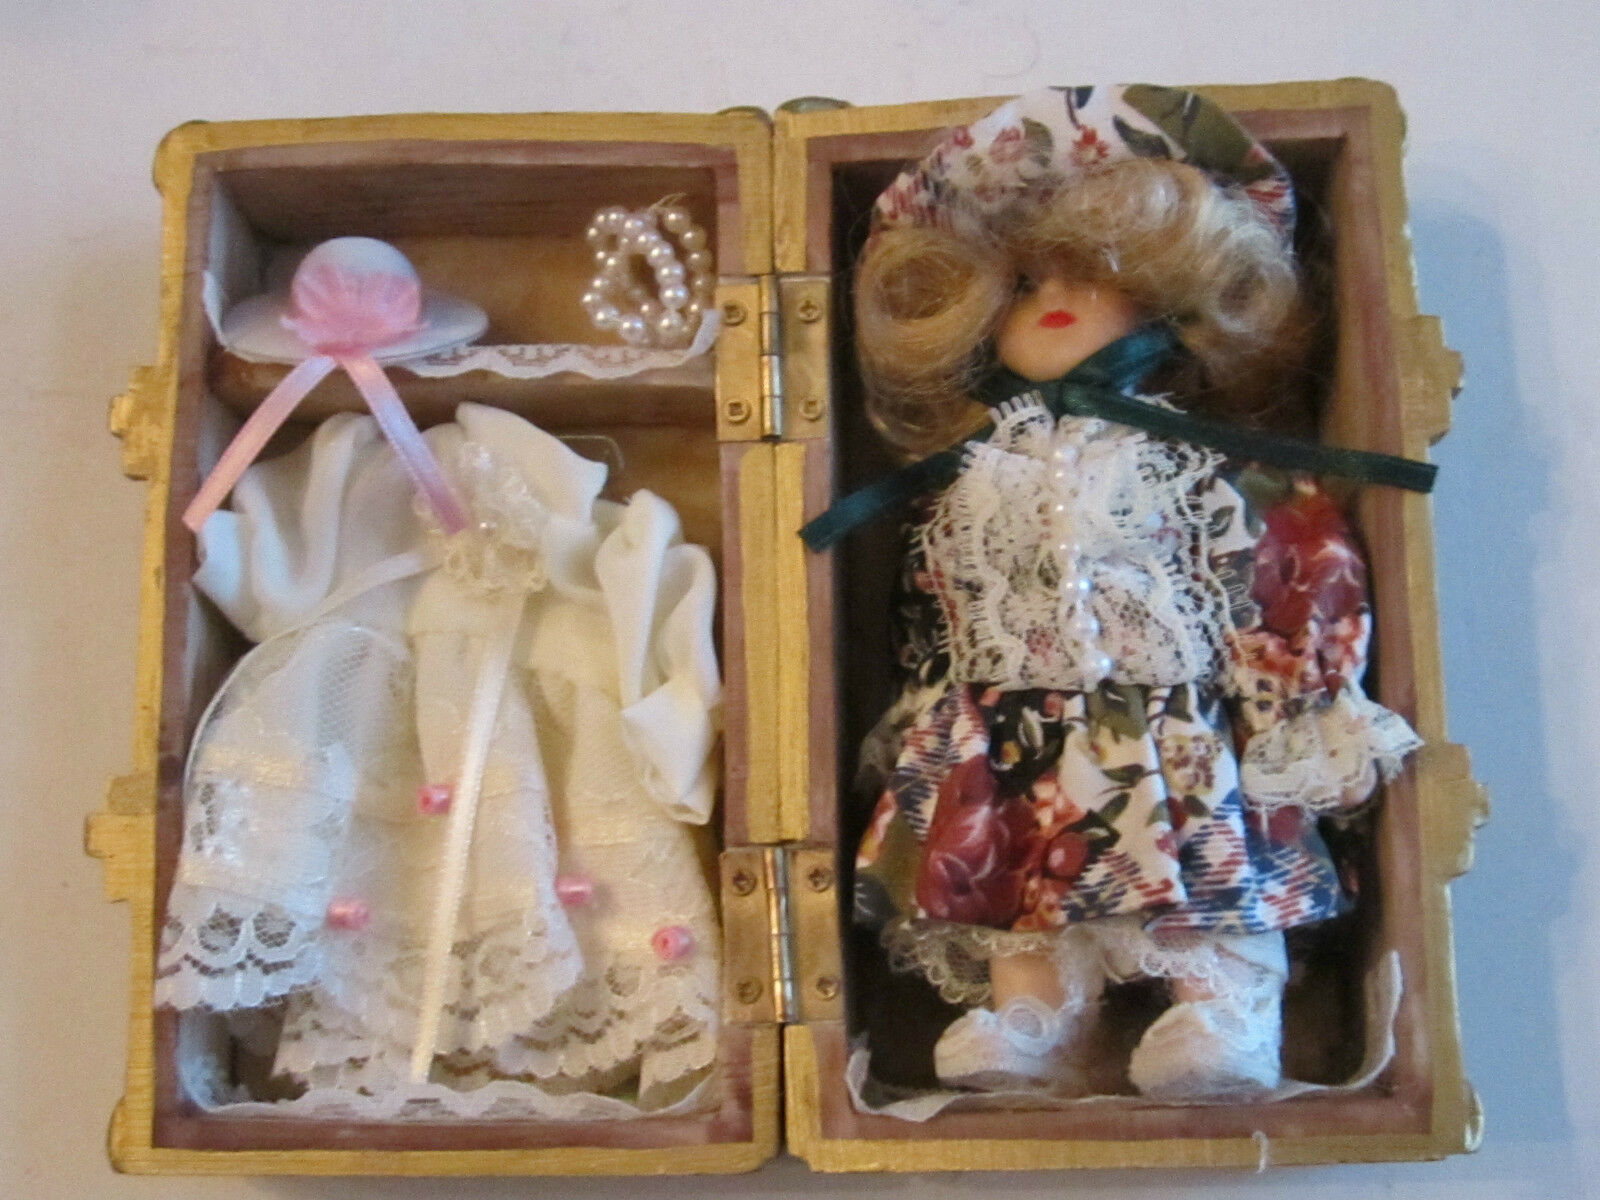 VINTAGE HEAVY WOOD DOLL CHEST WITH DOLL - 5 3 4  X 3 1 2  X 2 3 4   -   TUB D